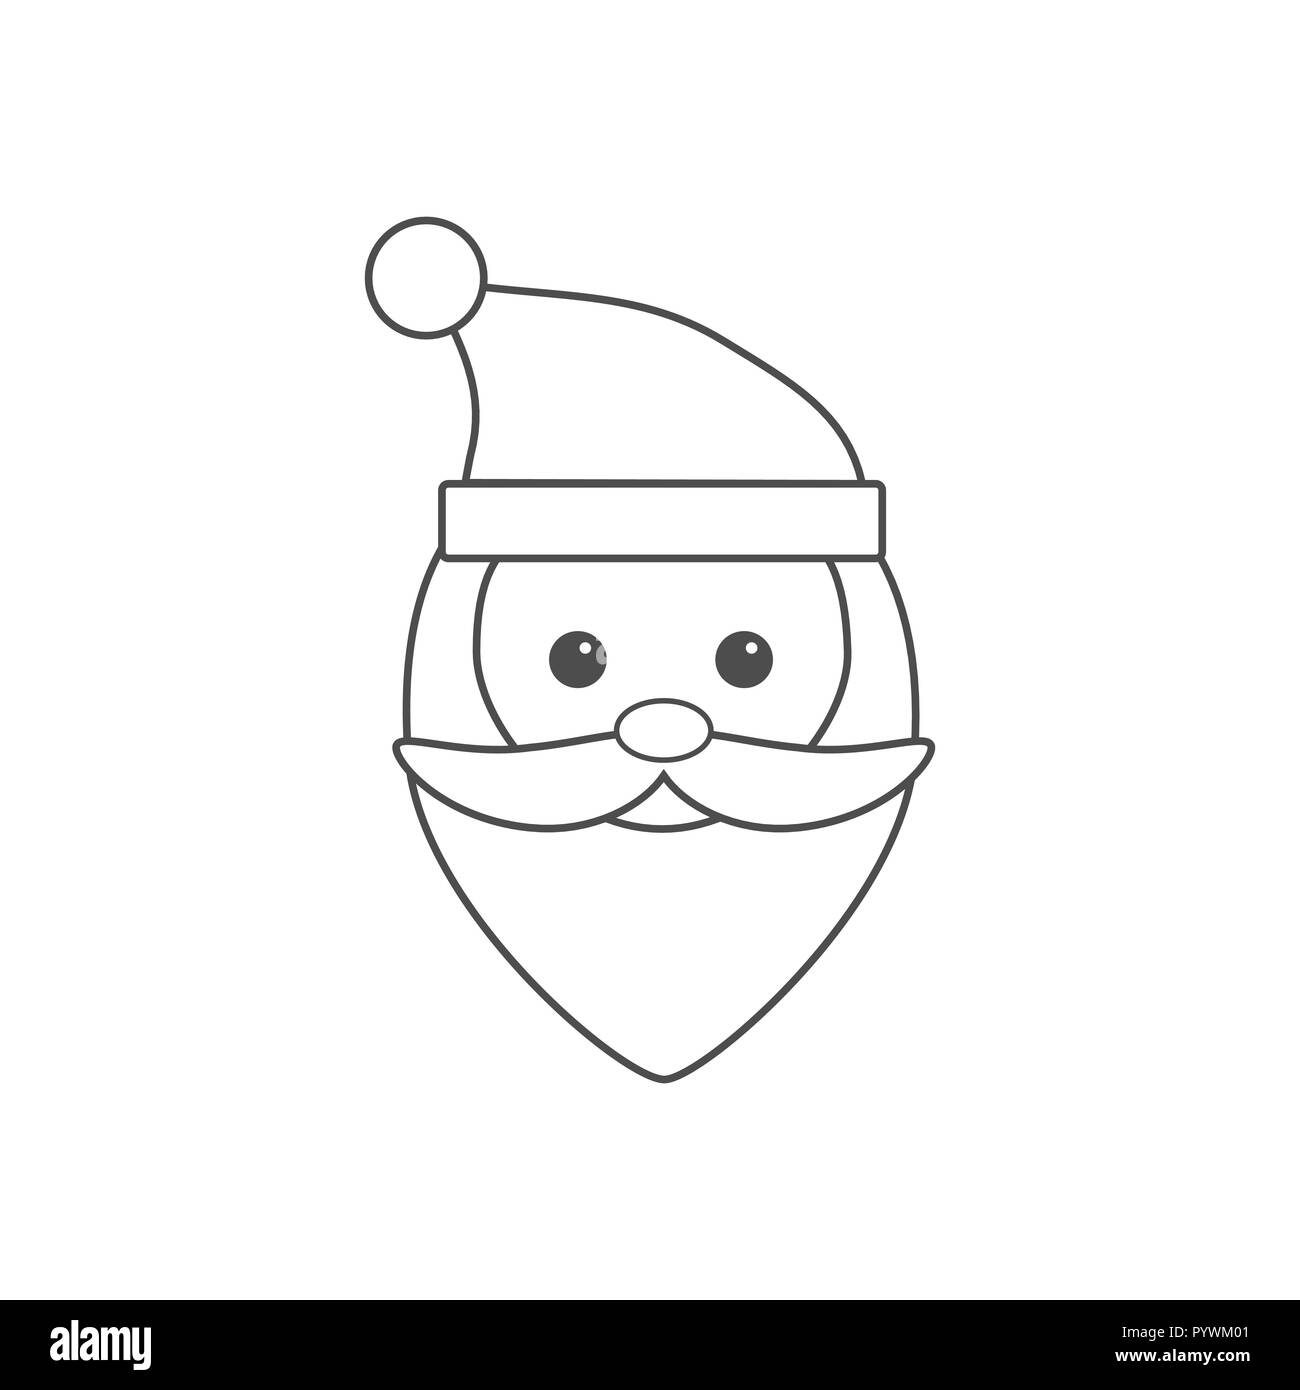 Cartoon Santa Claus Face Black and White Stock Photos & Images   Alamy